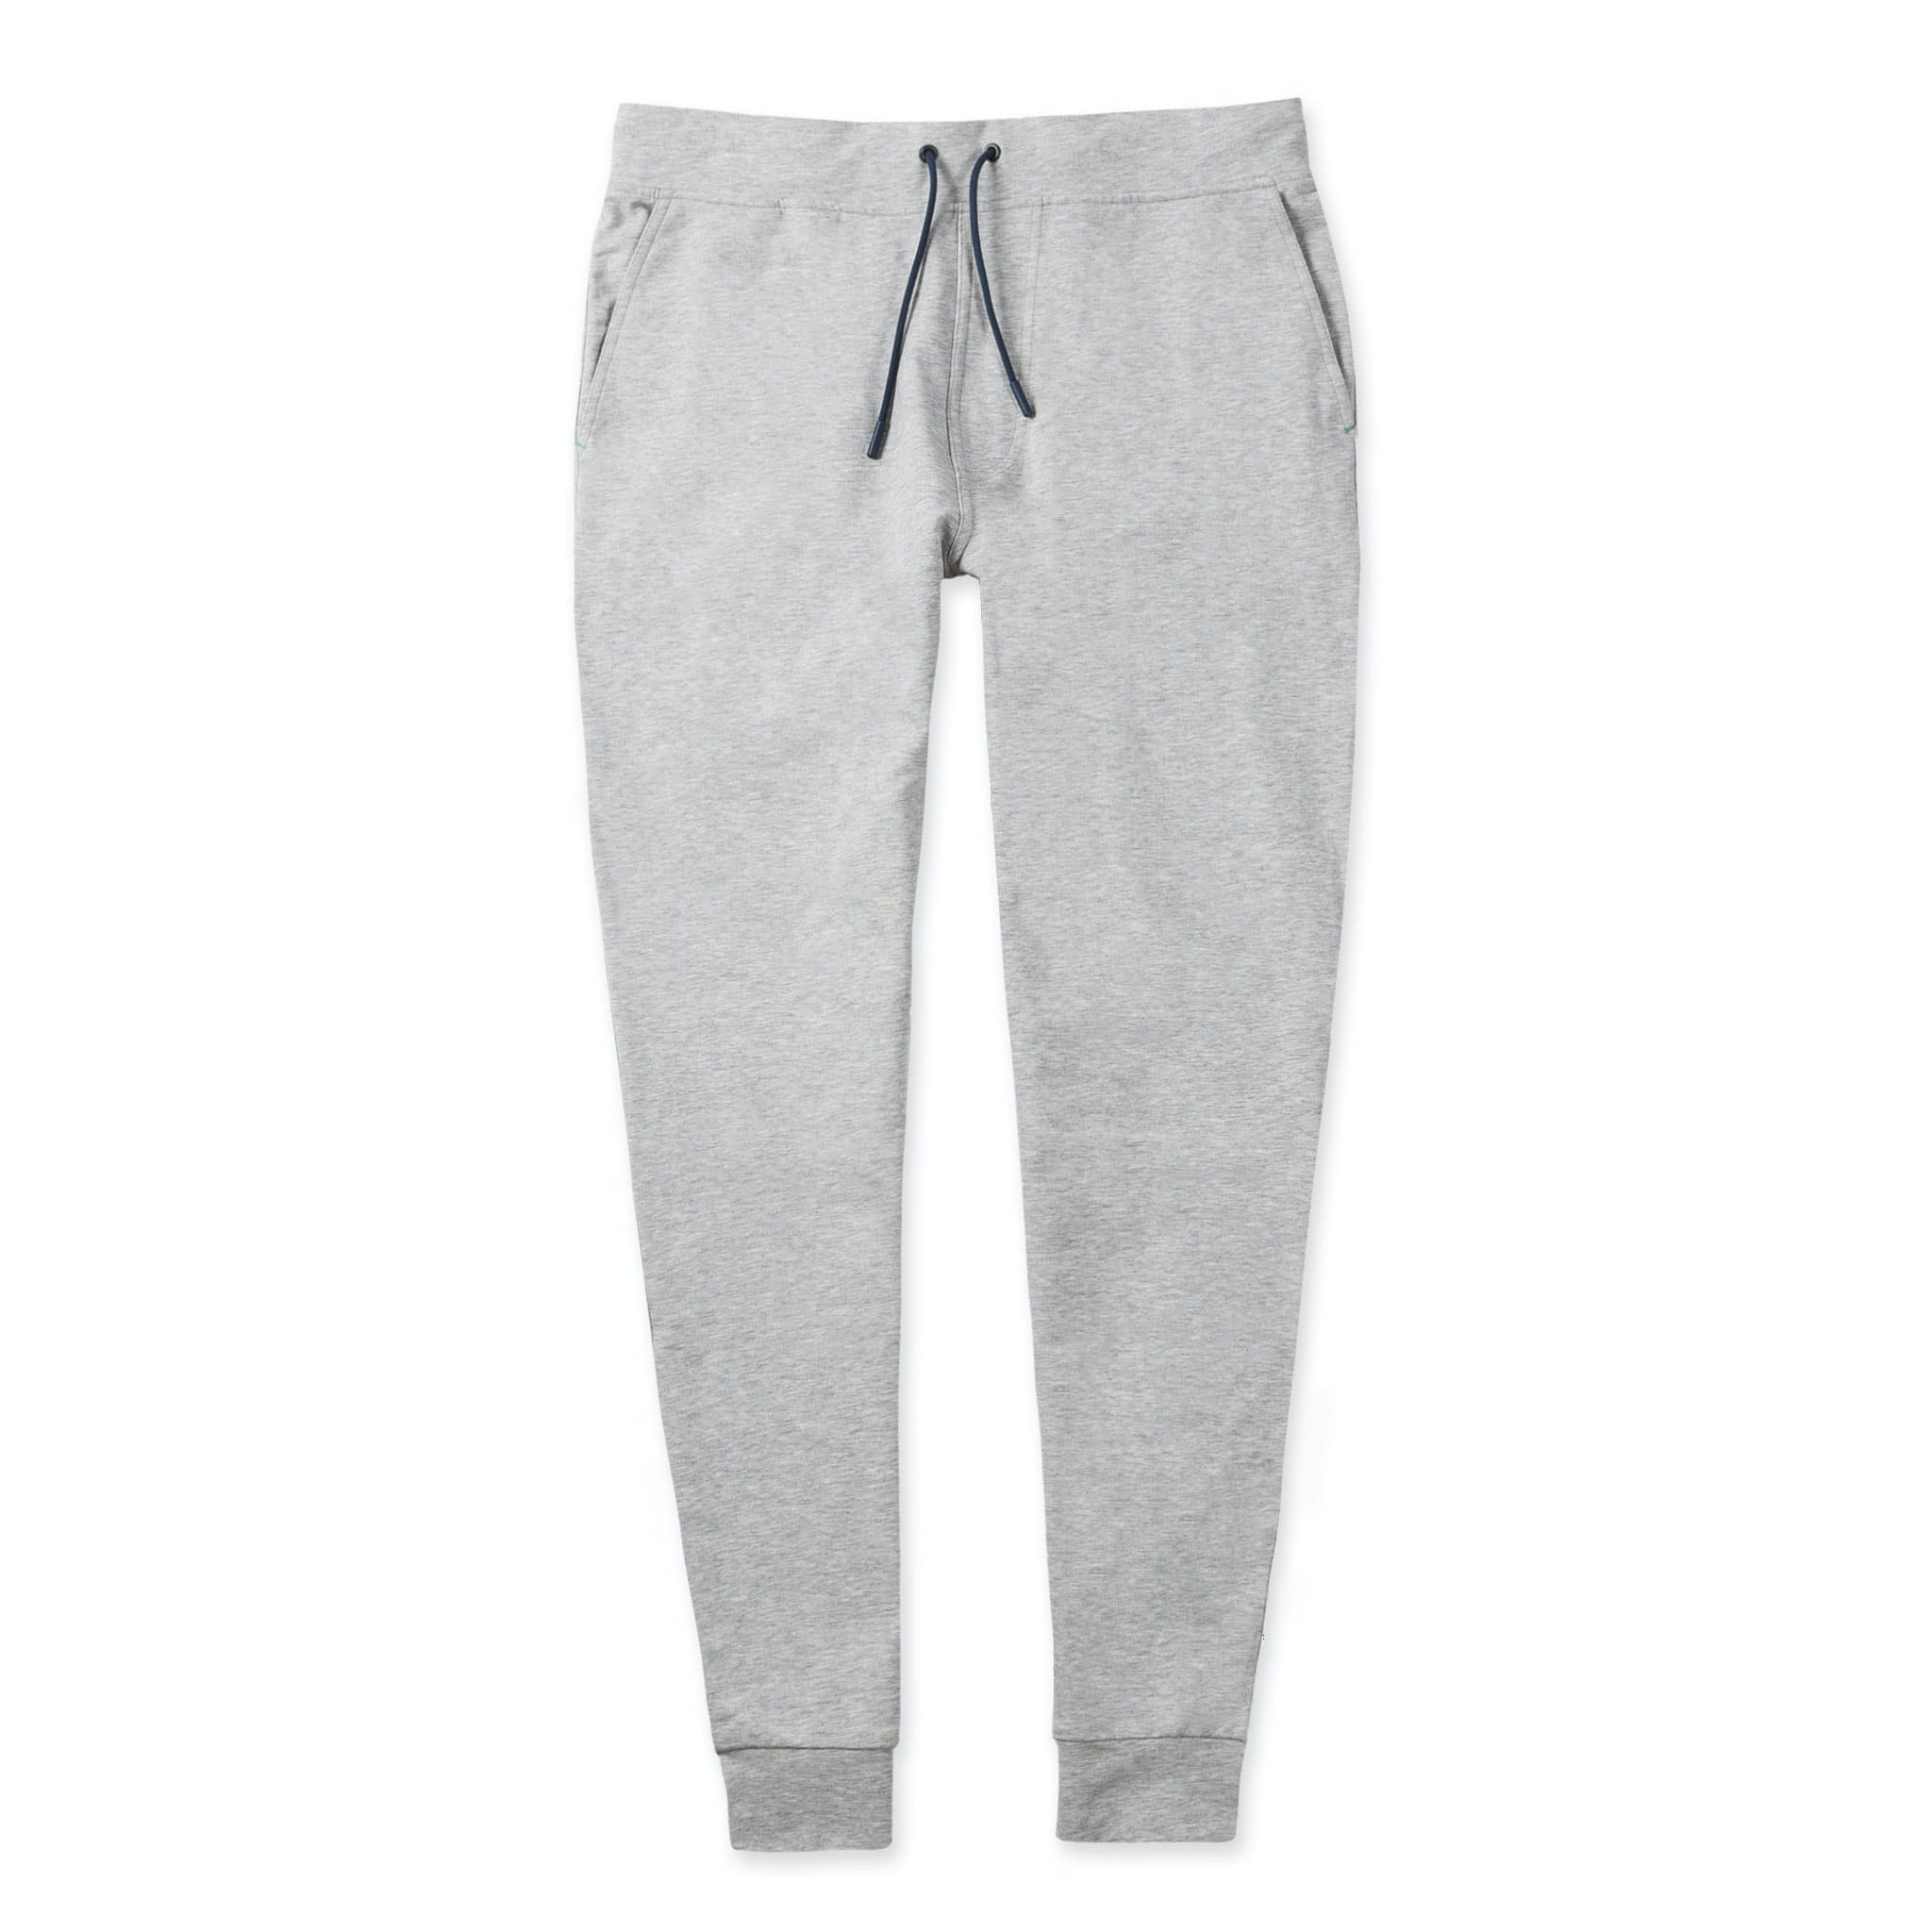 Mygb3dklbh myles apparel elements sweatpant 0 original